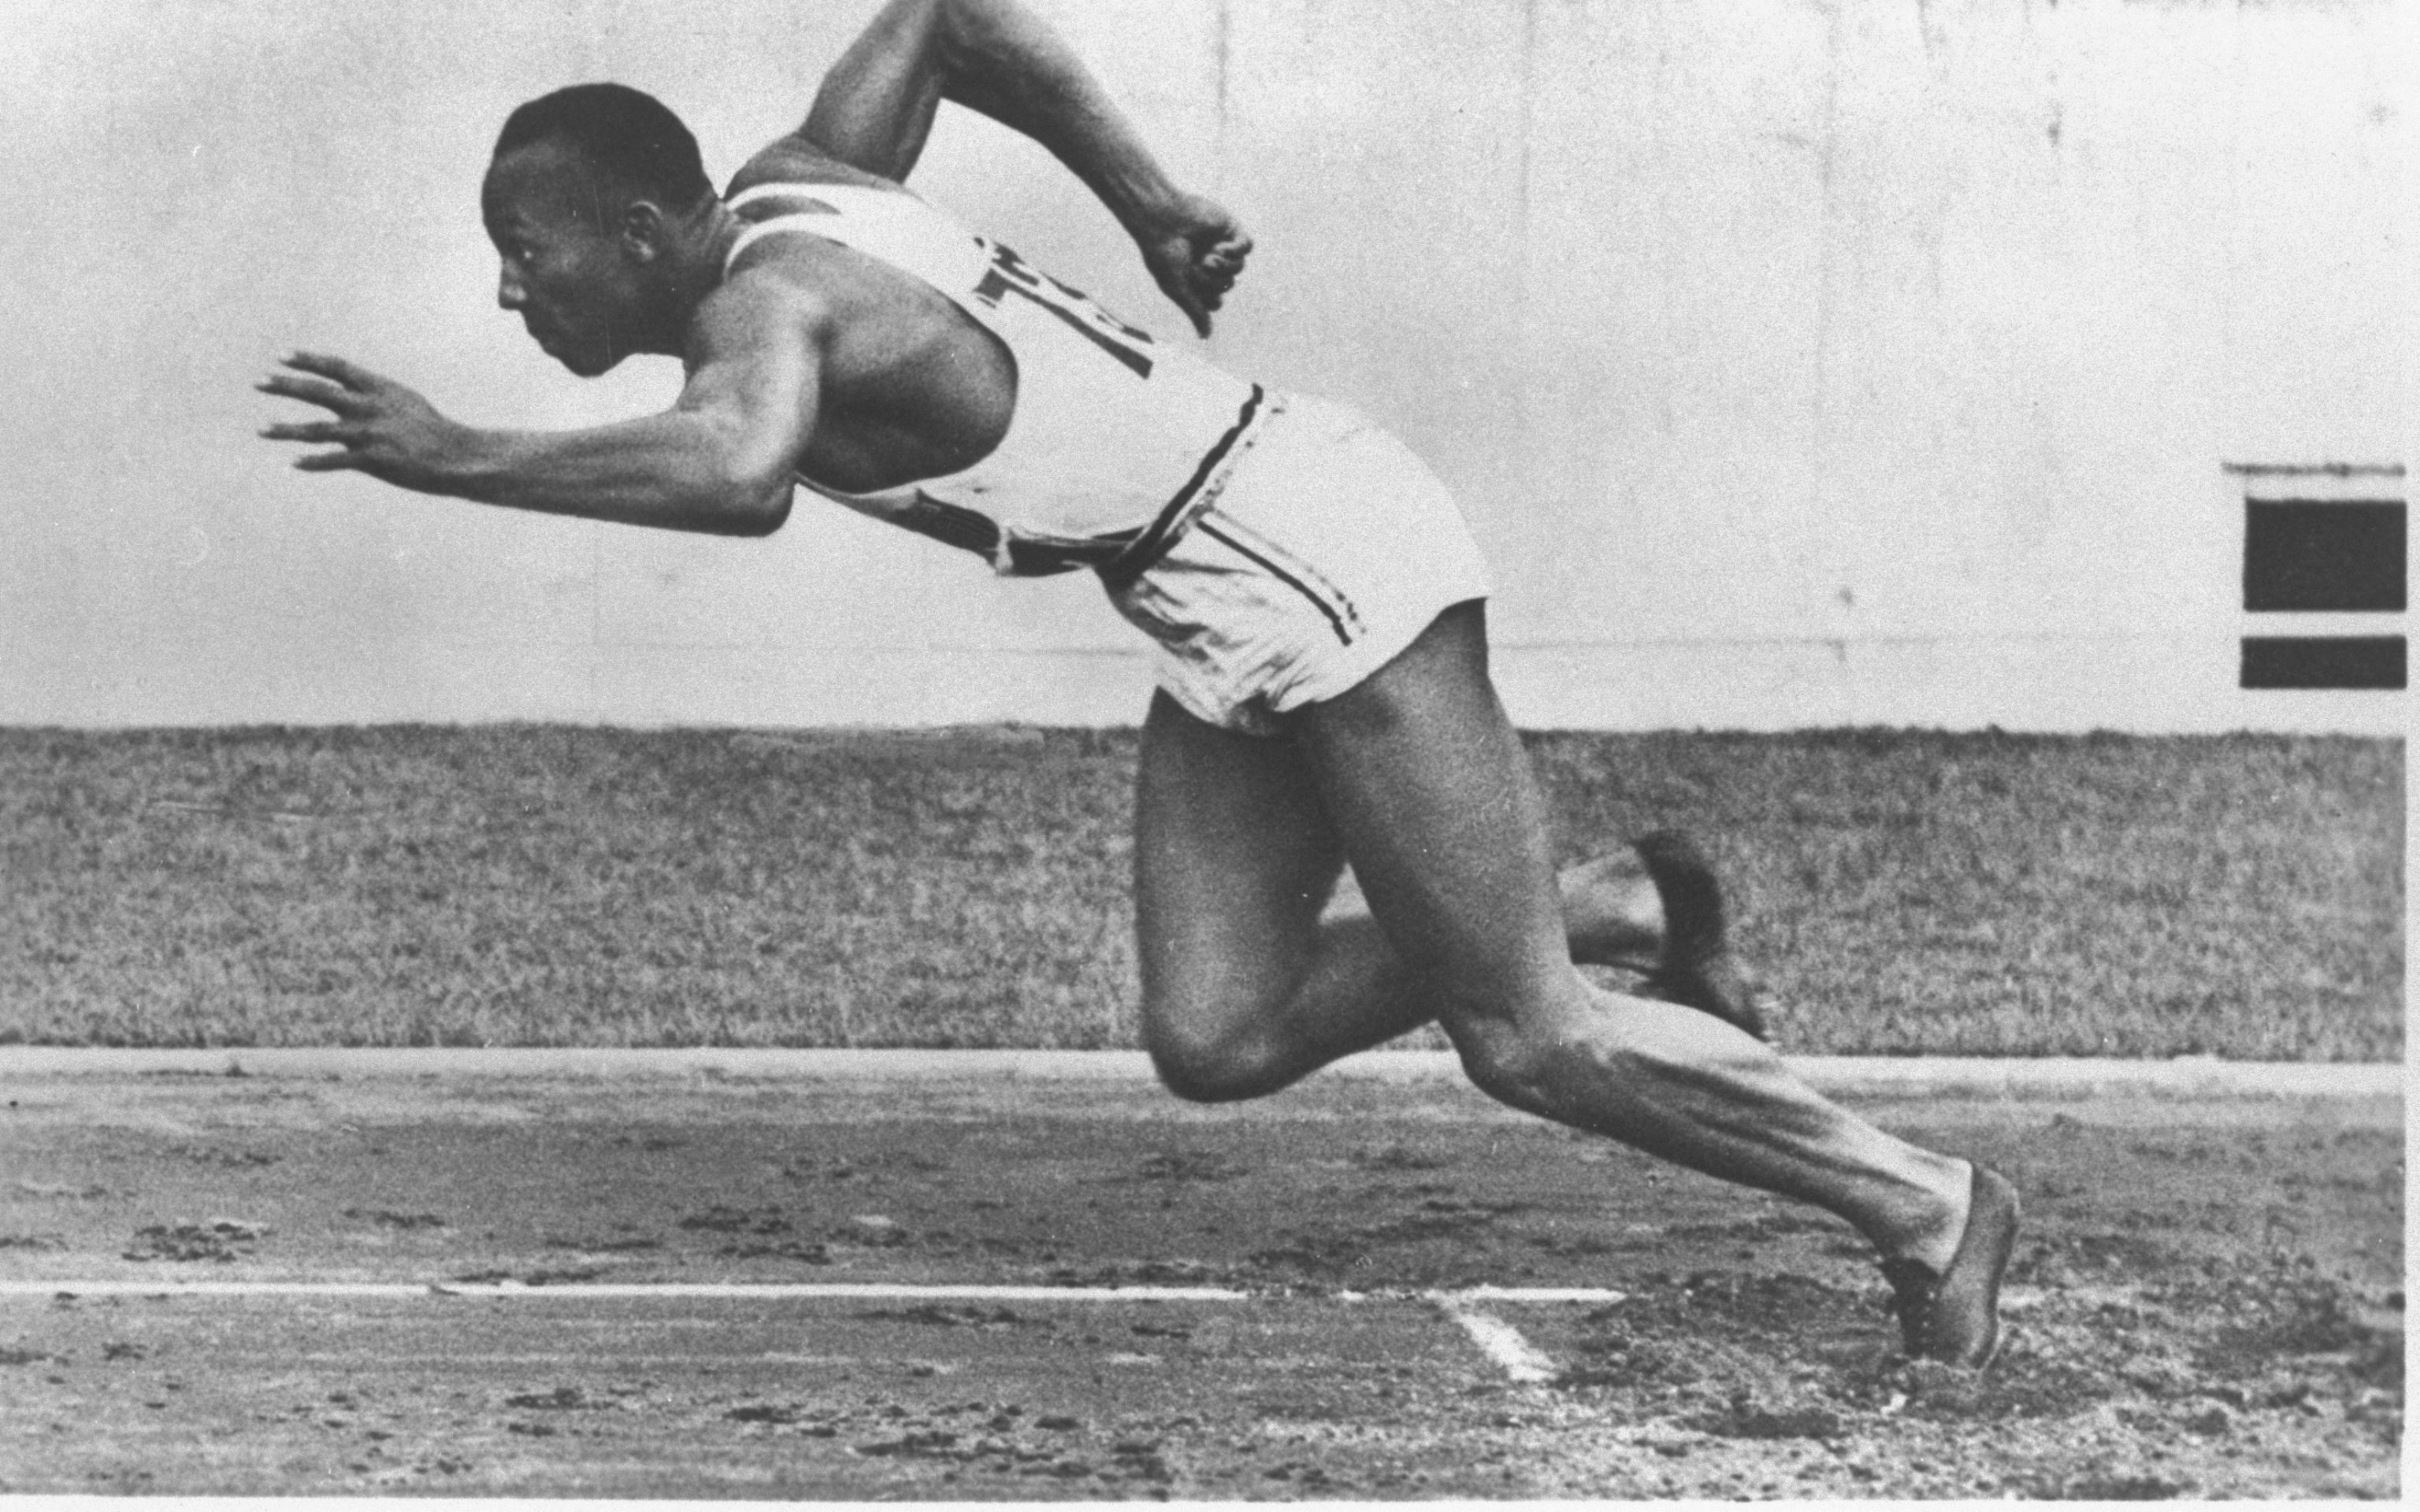 jesse owens pictures in color stock detail jesse owens official psds pictures in jesse color owens